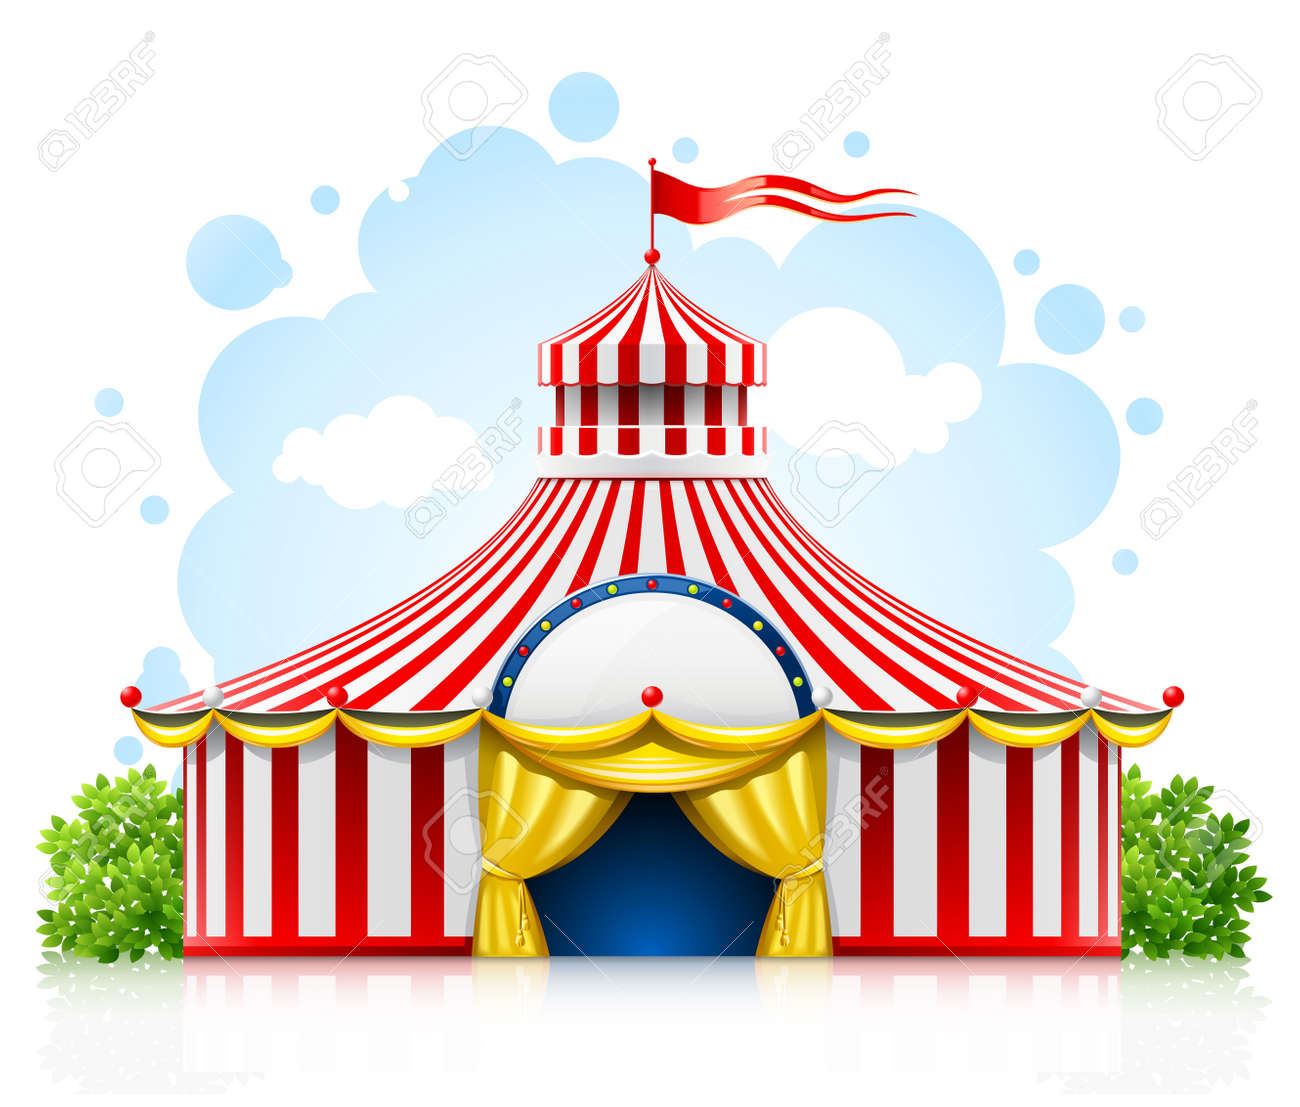 striped strolling circus marquee tent with flag illustration isolated on white background Stock Vector - 9830121